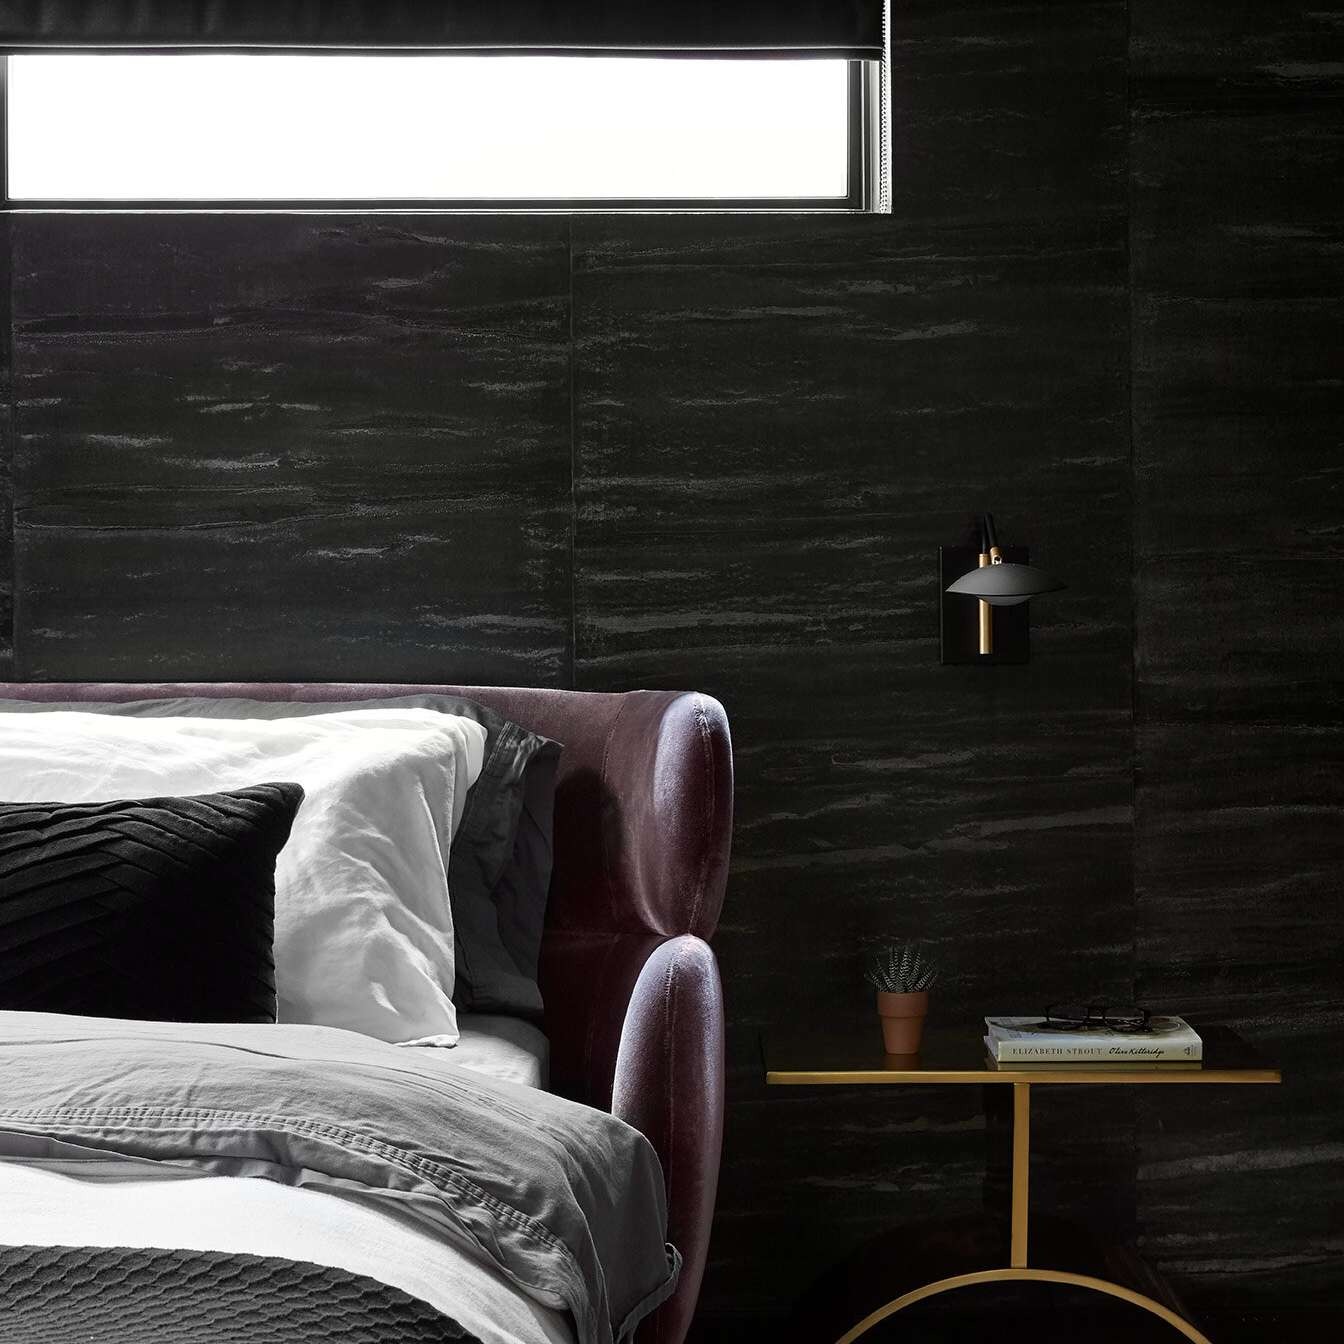 Sleek and chic black and gray bedroom with stone-look wall texture